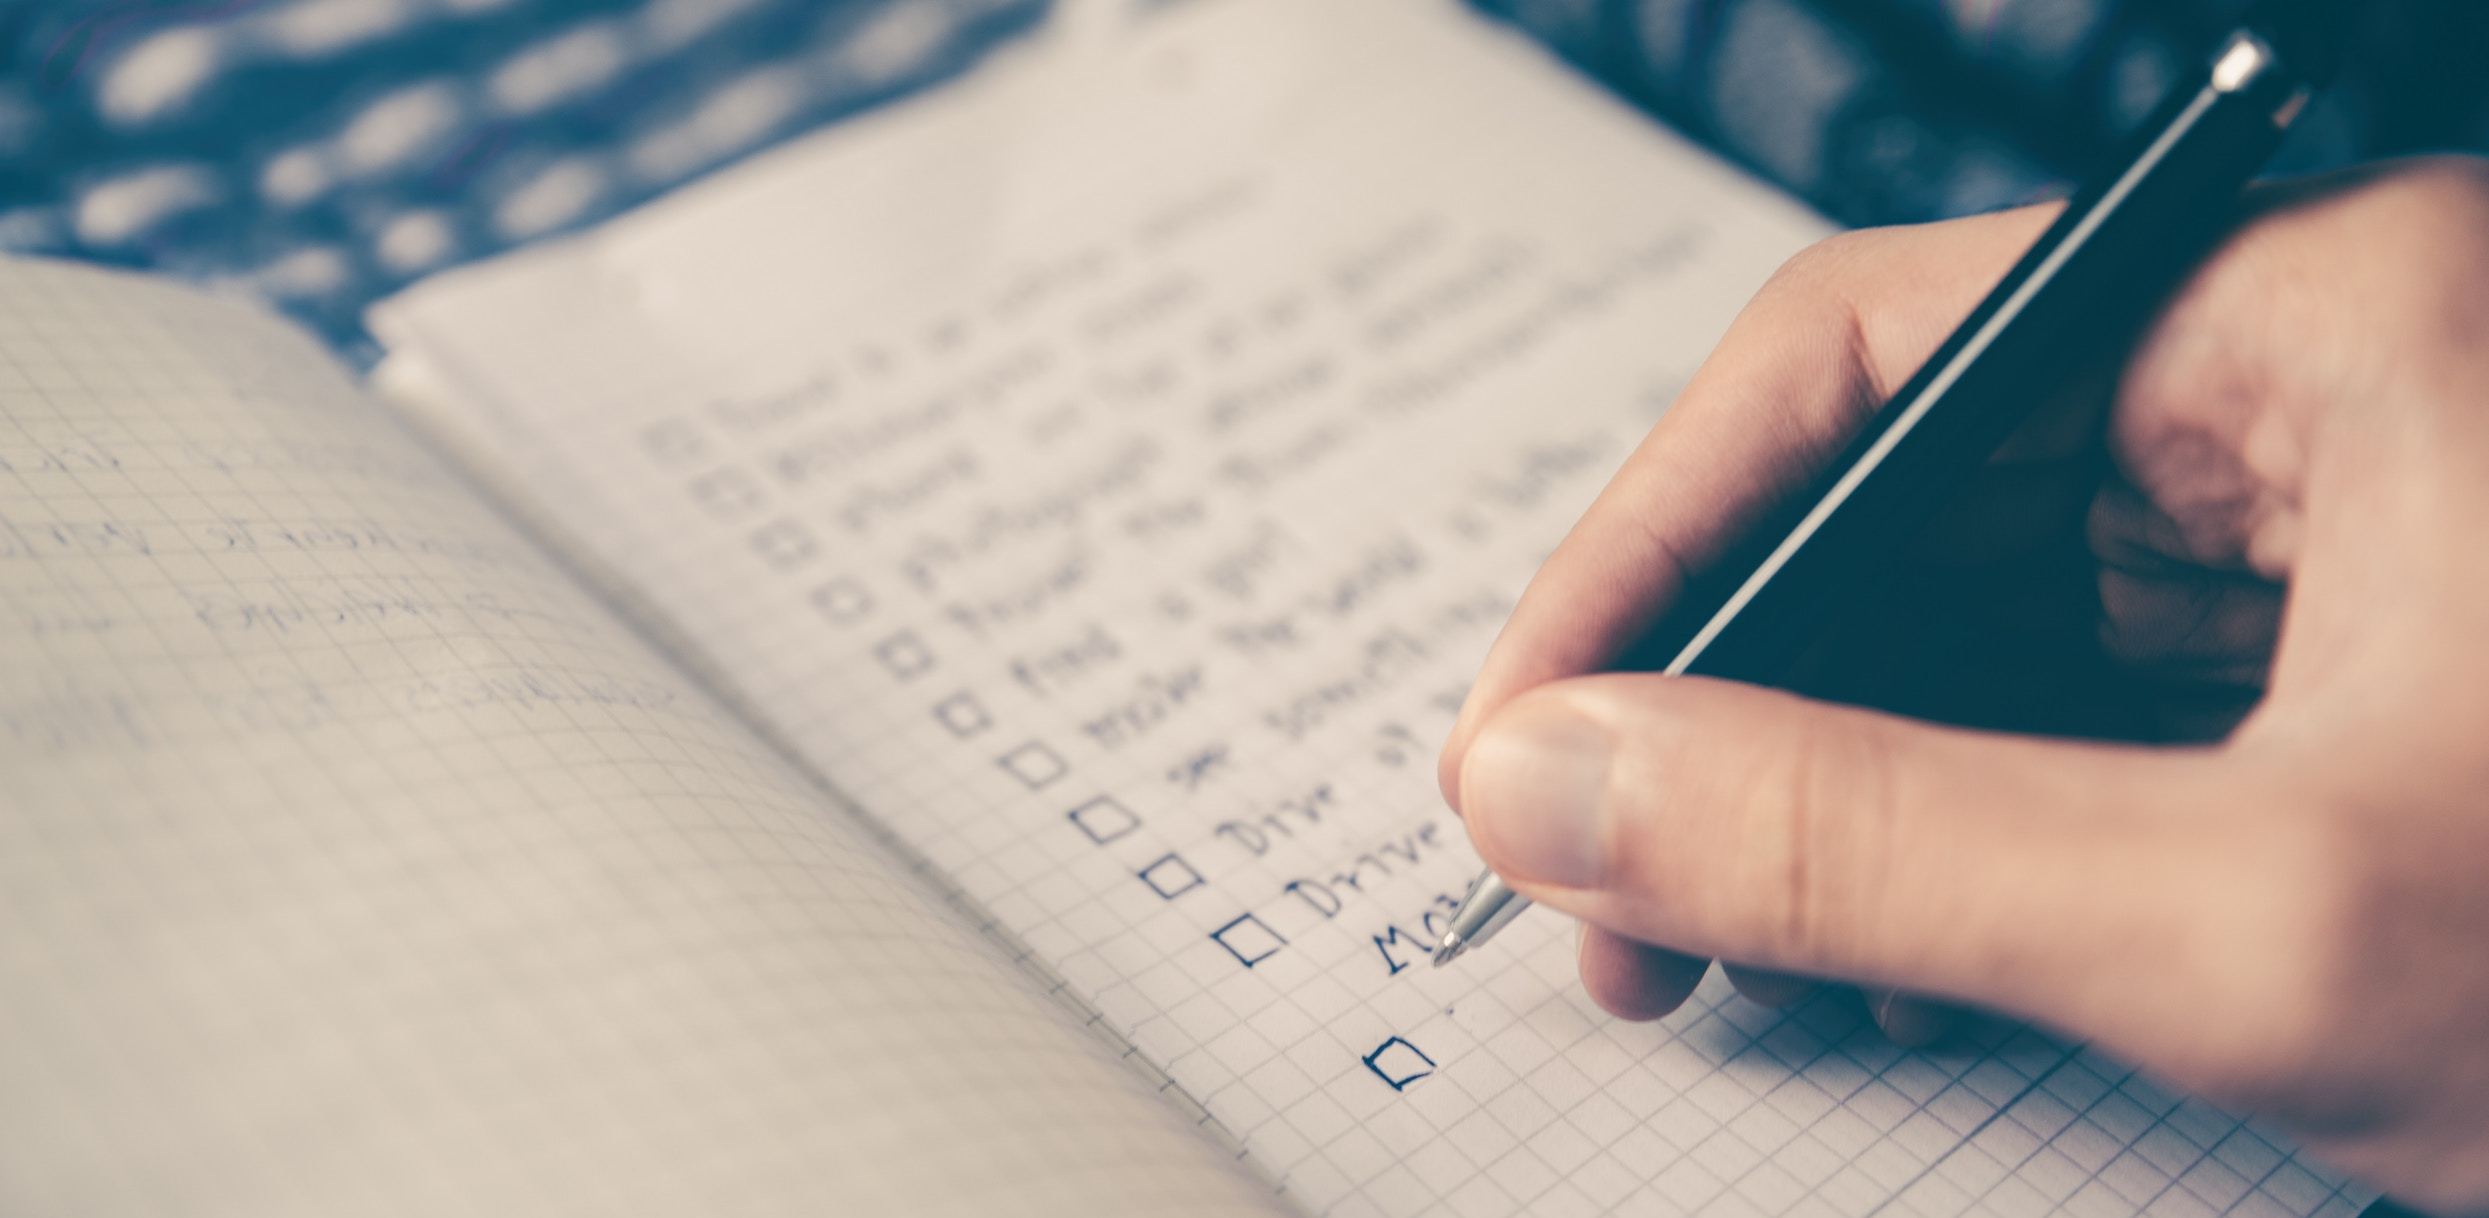 Mastering to do lists